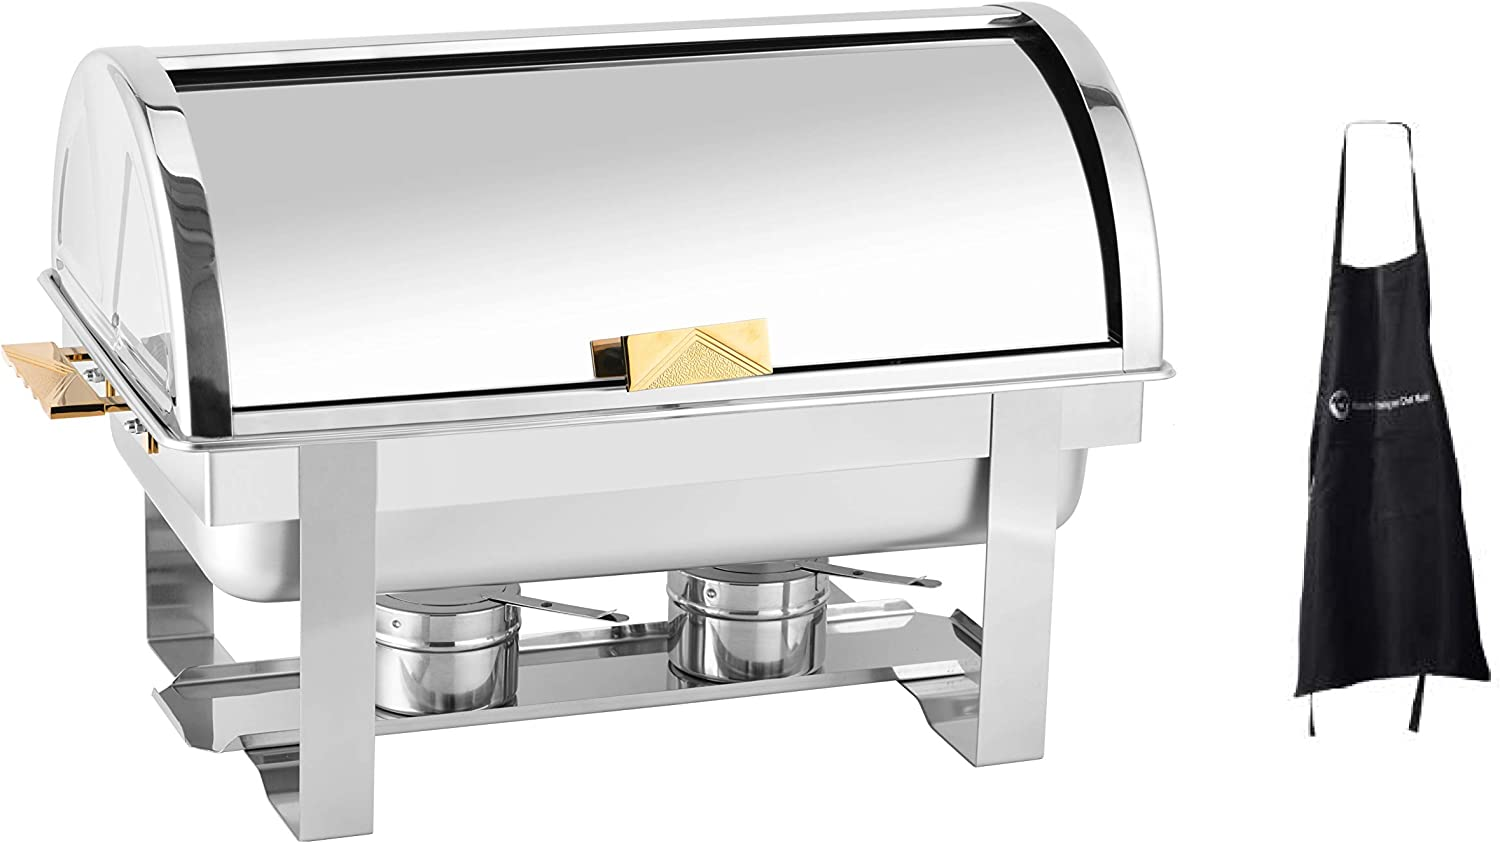 Roll Top Stainless Steel Chafing Dish 8qt Gold Accent by ChefMaid (8qt Gold Accent Chafing Dish)